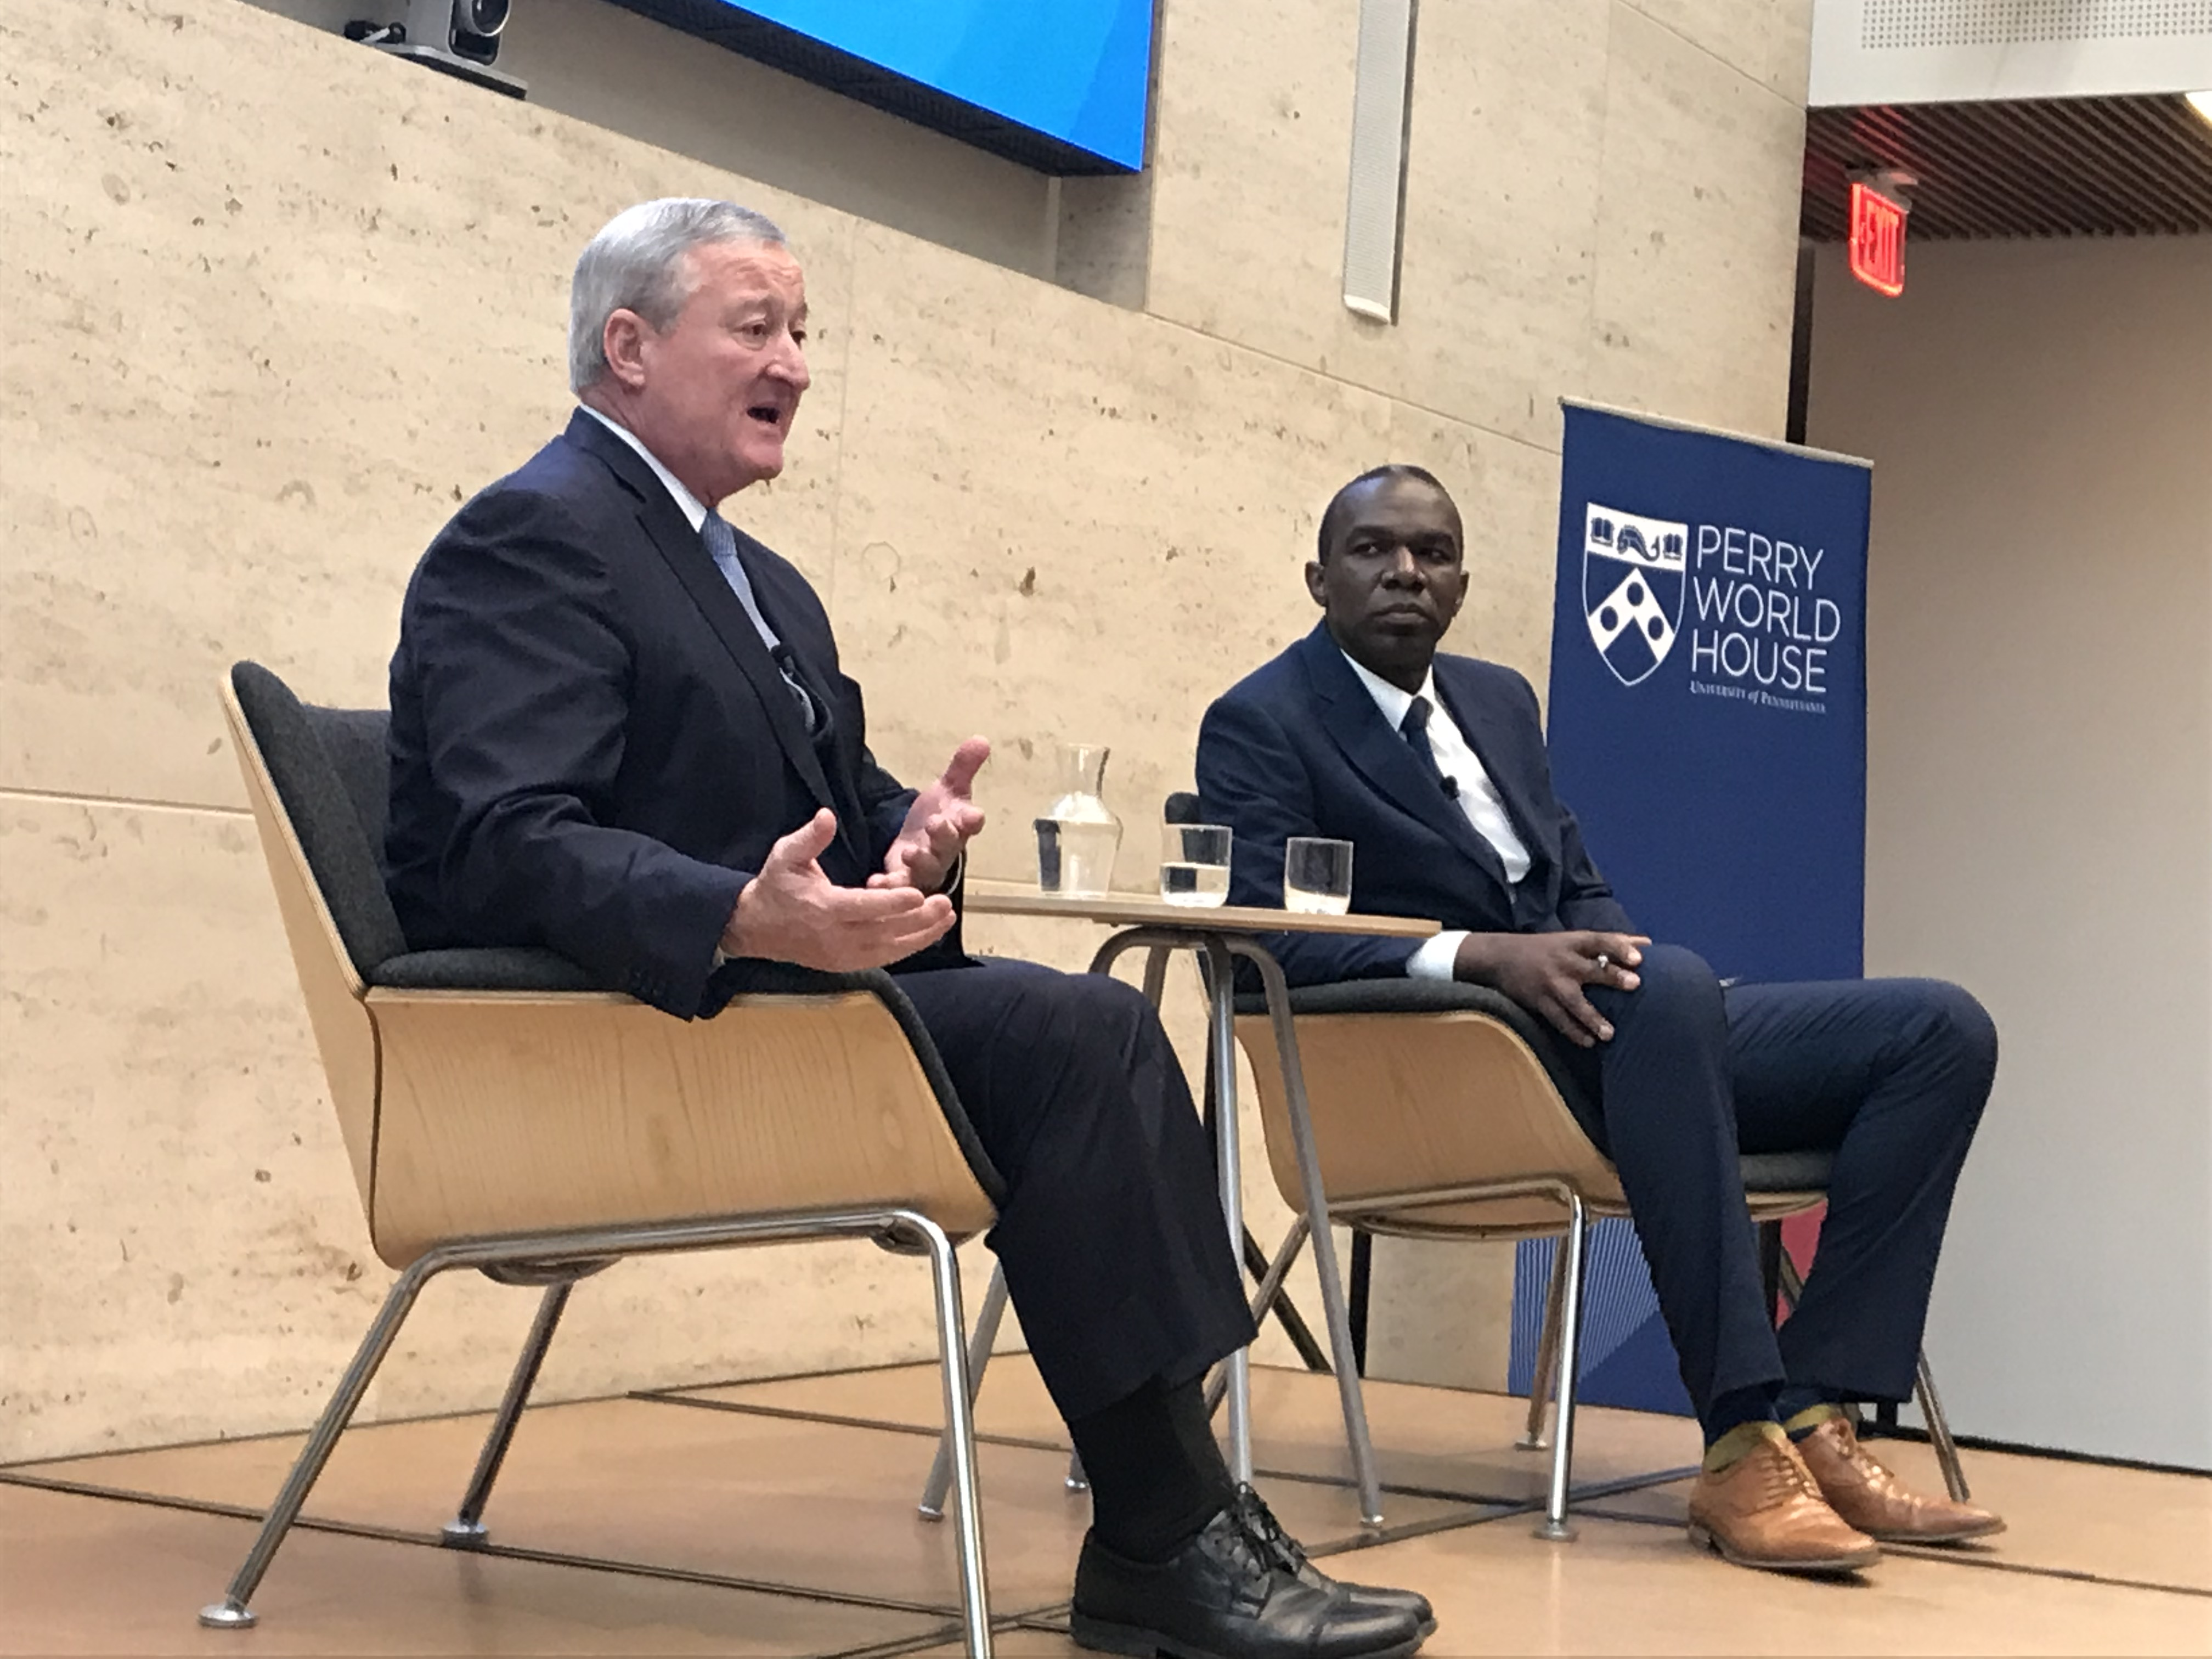 """Mayor Jim Kenney addresses the audience during his conversation with Sozi Tulante during """"Fearless at the Forefront: Philadelphia's Local Response to Shifting Immigration Policy"""" conversation on Nov. 14."""